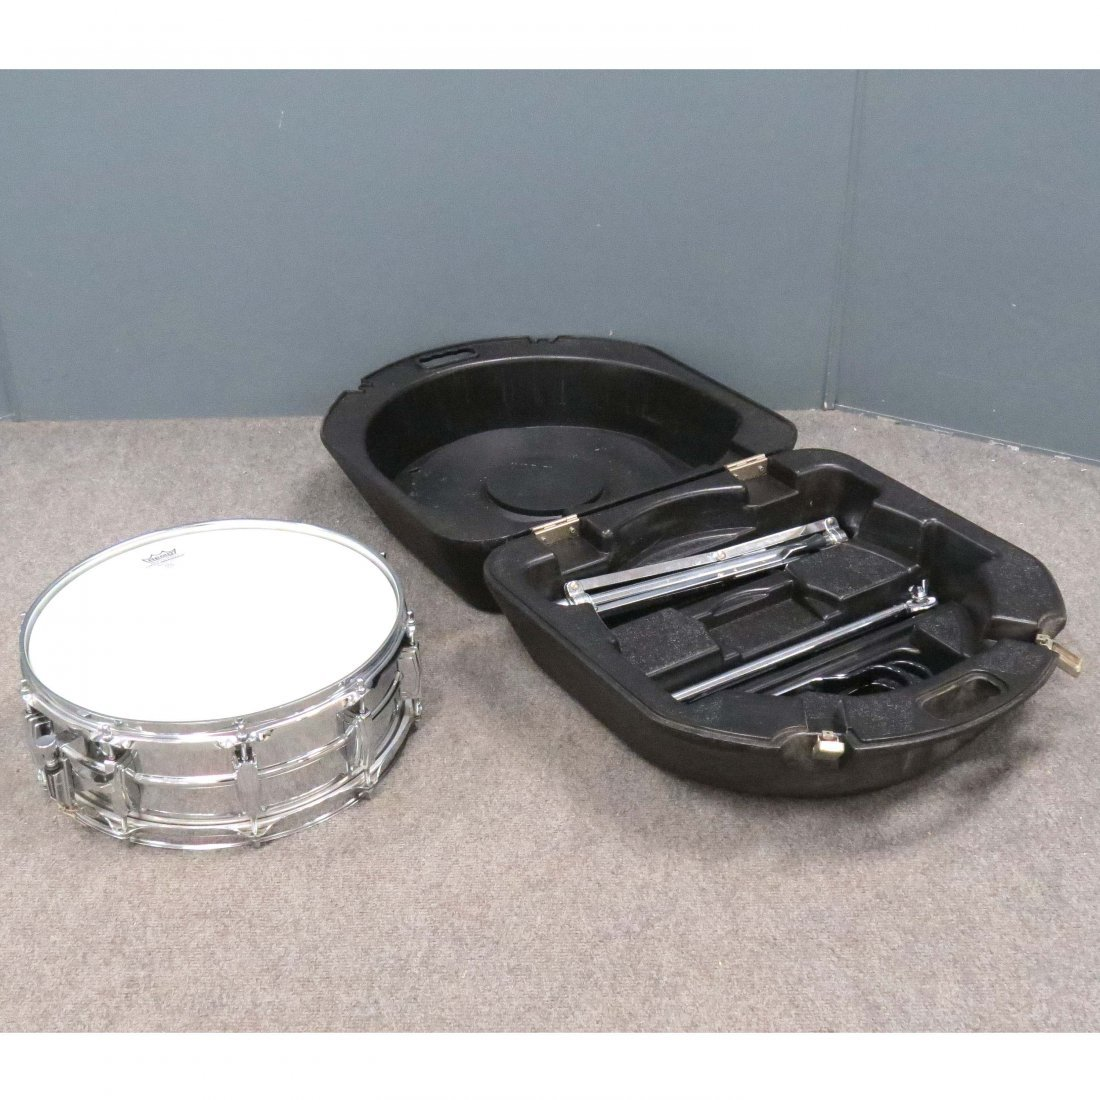 LUDWIG USA CHROME SNARE DRUM WITH STAND, #3035617